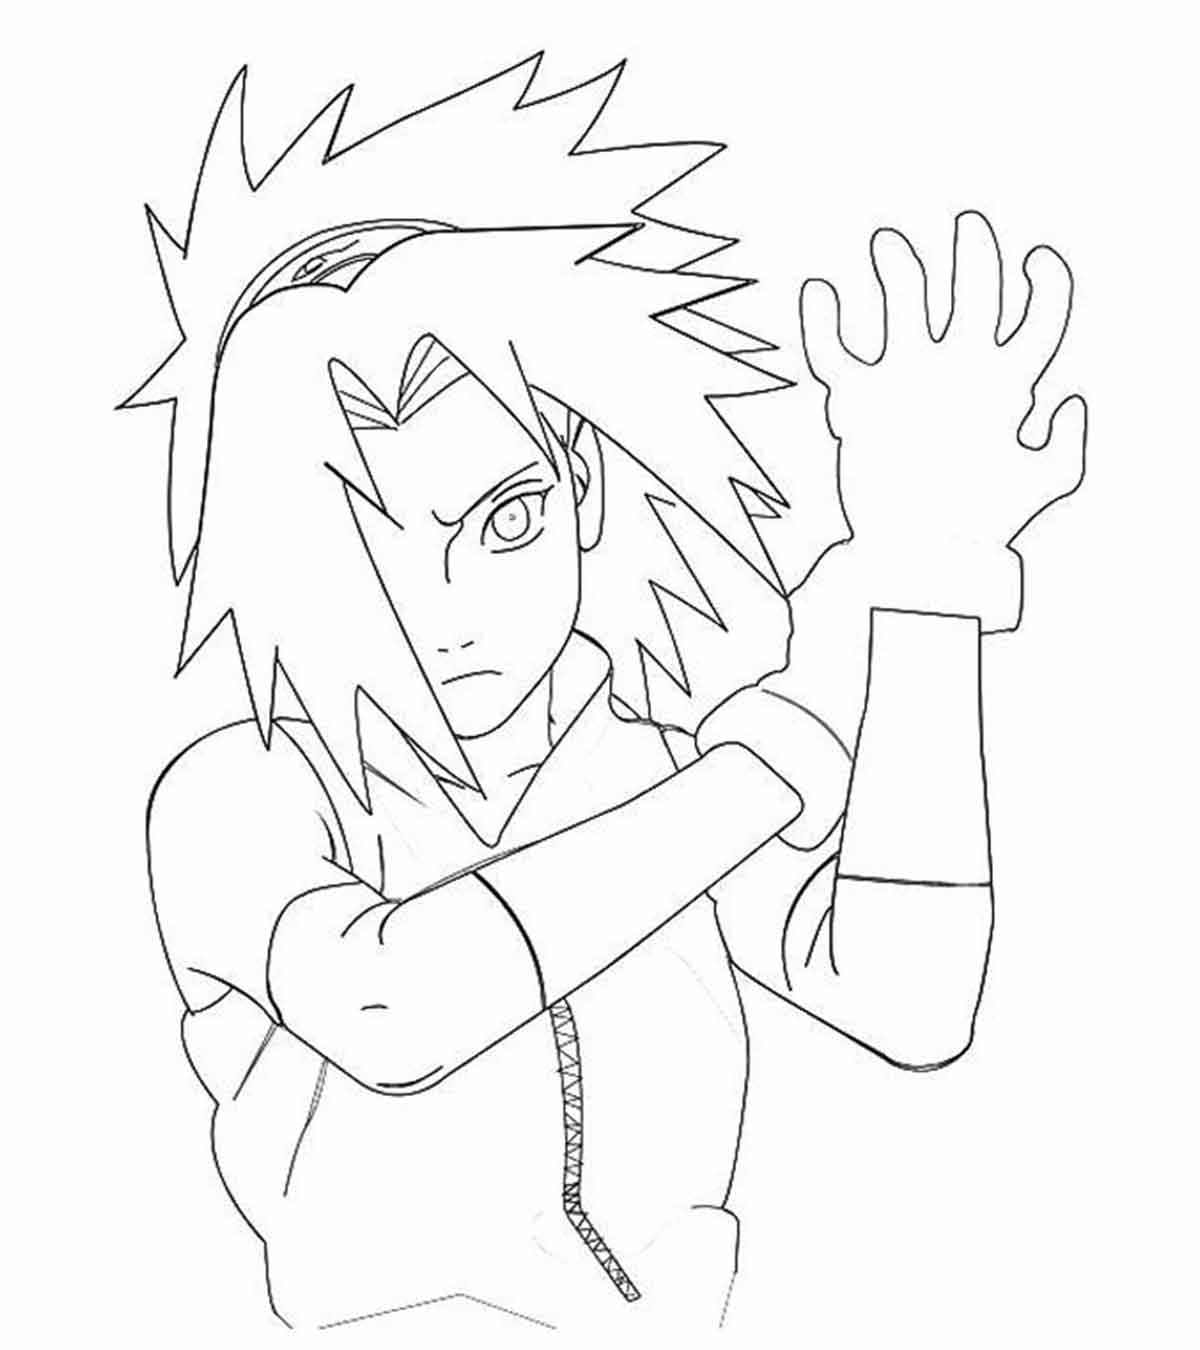 Anime Naruto Coloring Pages Top 25 Free Printable Naruto Coloring Pages Online